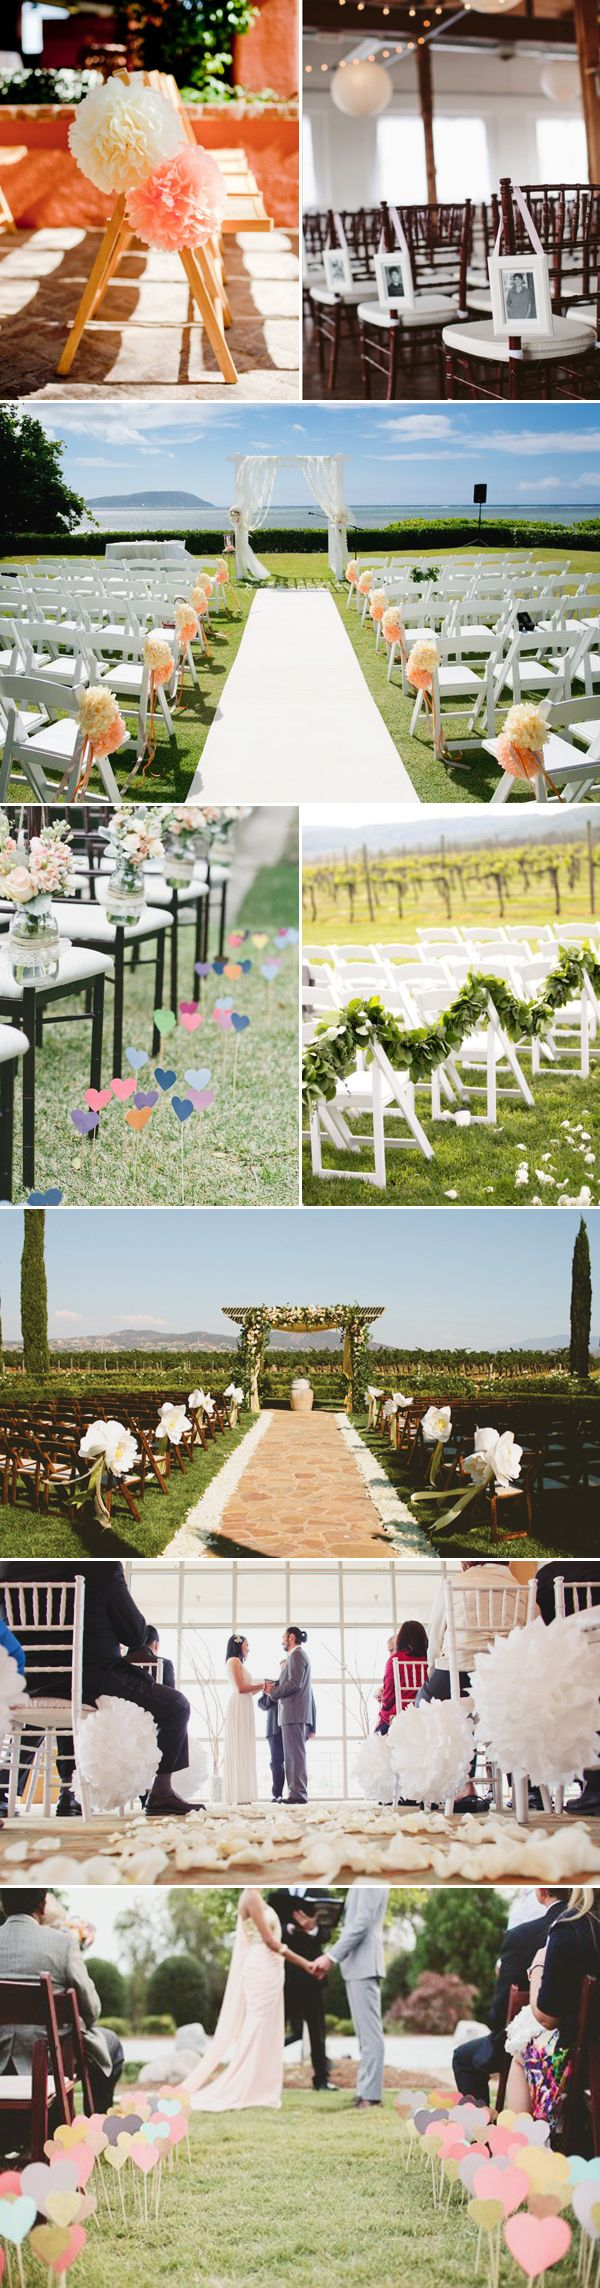 35  Chic Wedding Ceremony Aisle Markers | http://www.deerpearlflowers.com/35-chic-wedding-ceremony-aisle-markers/